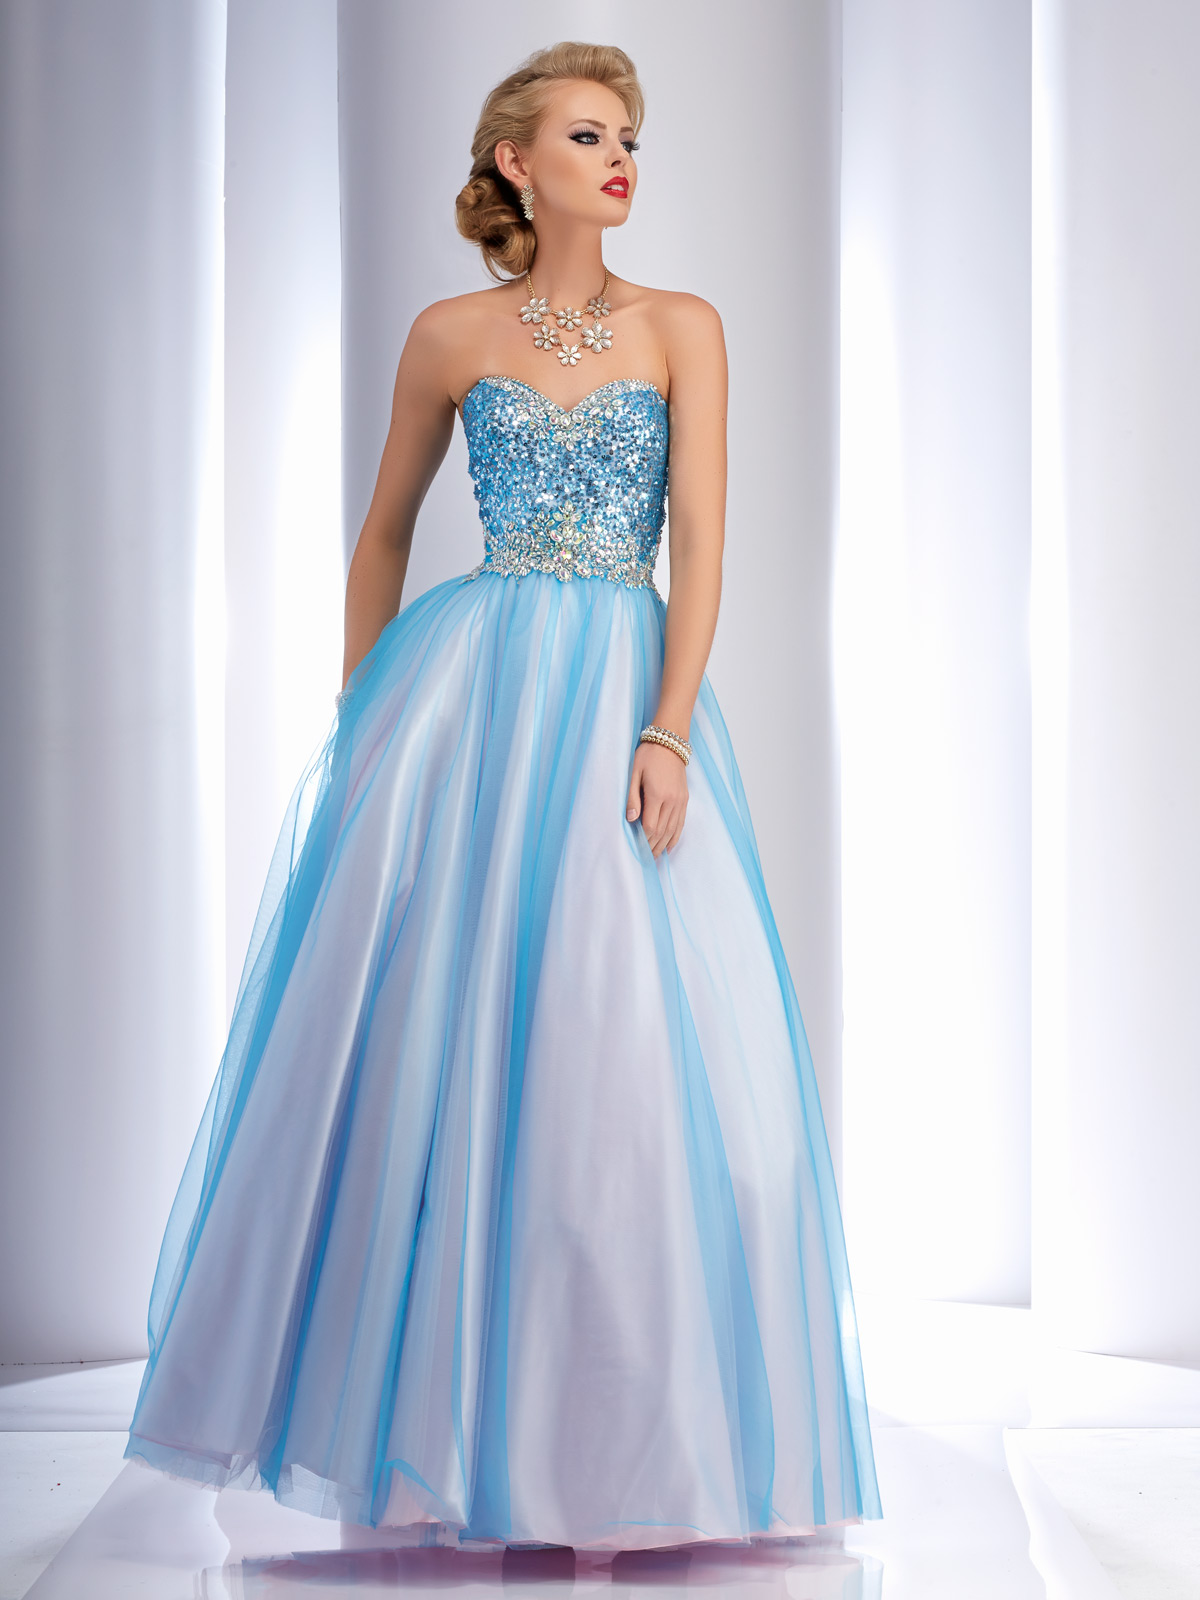 Clarisse Ball Gown Prom Dress 2620 | Promgirl.net